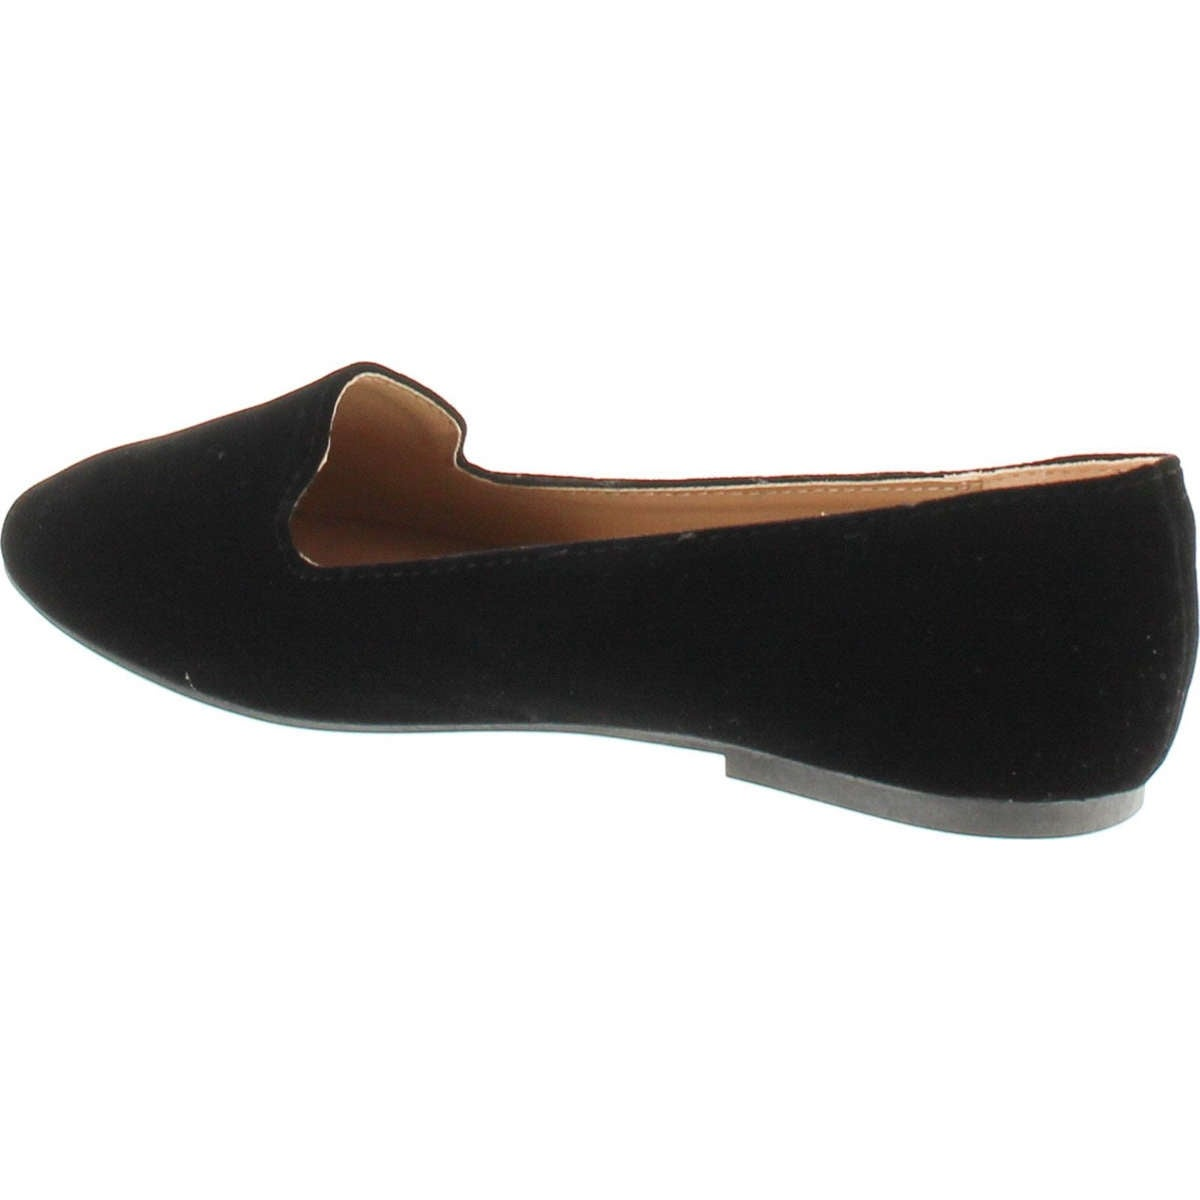 Forever Diana-81 Loafers Shoes Leopard Suede 11